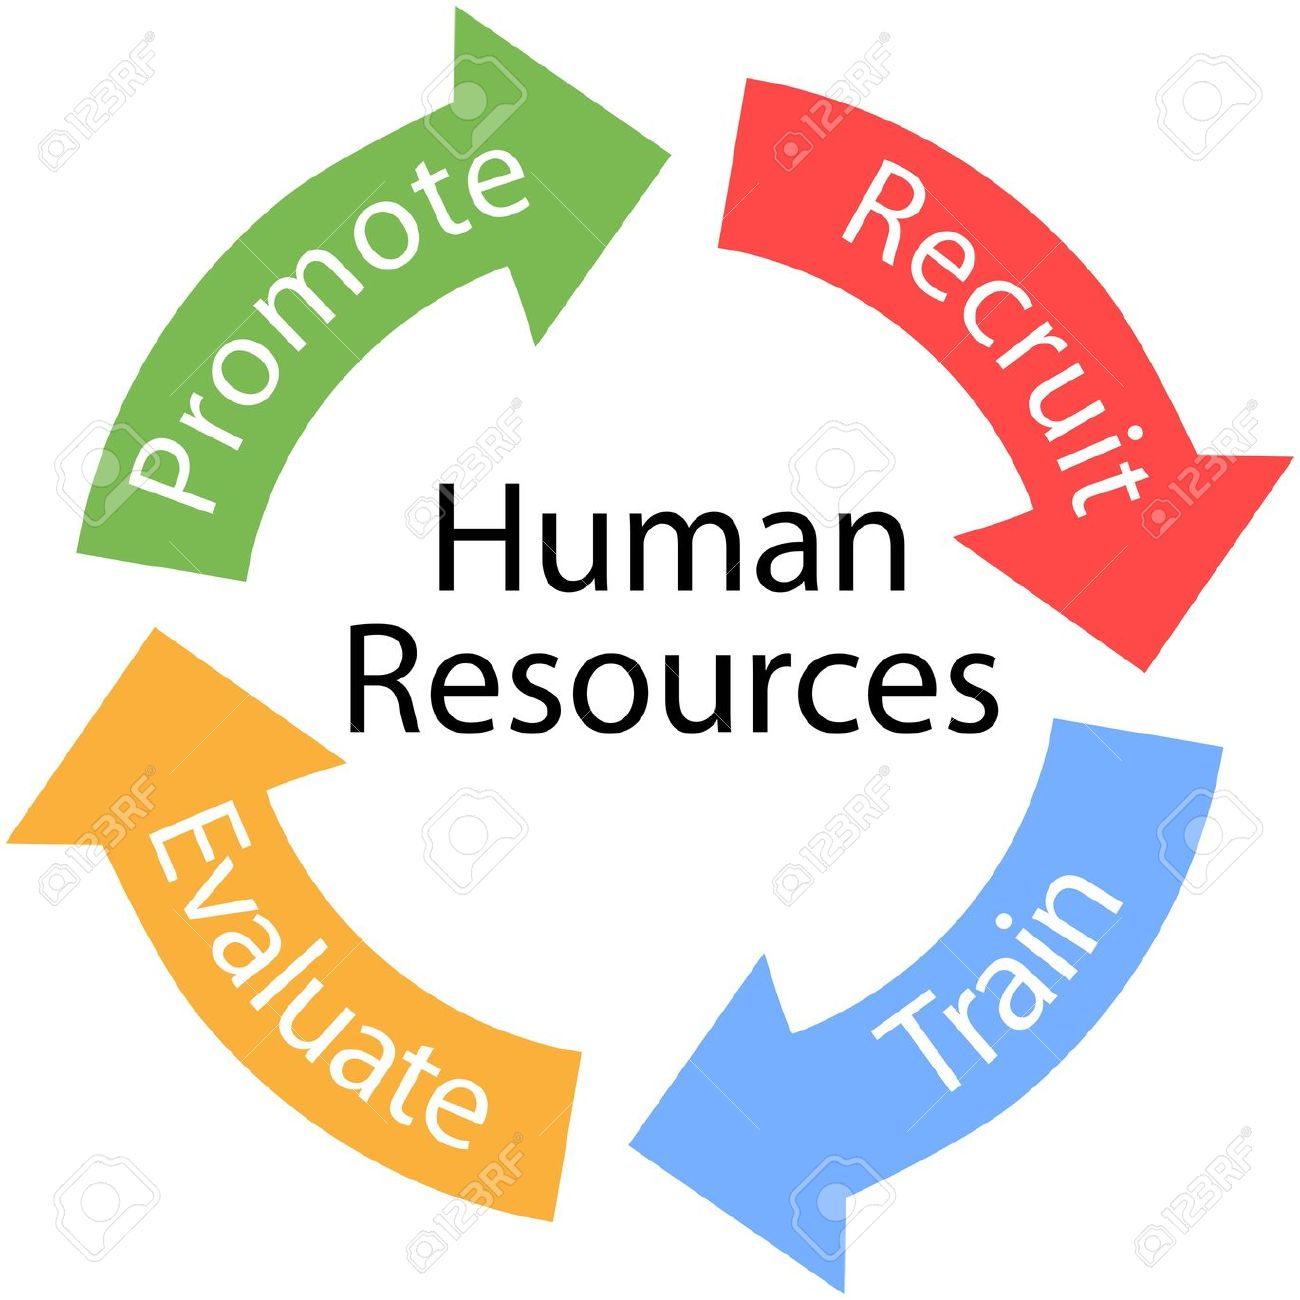 unit managing human resources assignment solution hnd assignment unit 22 human resources hnd assignment